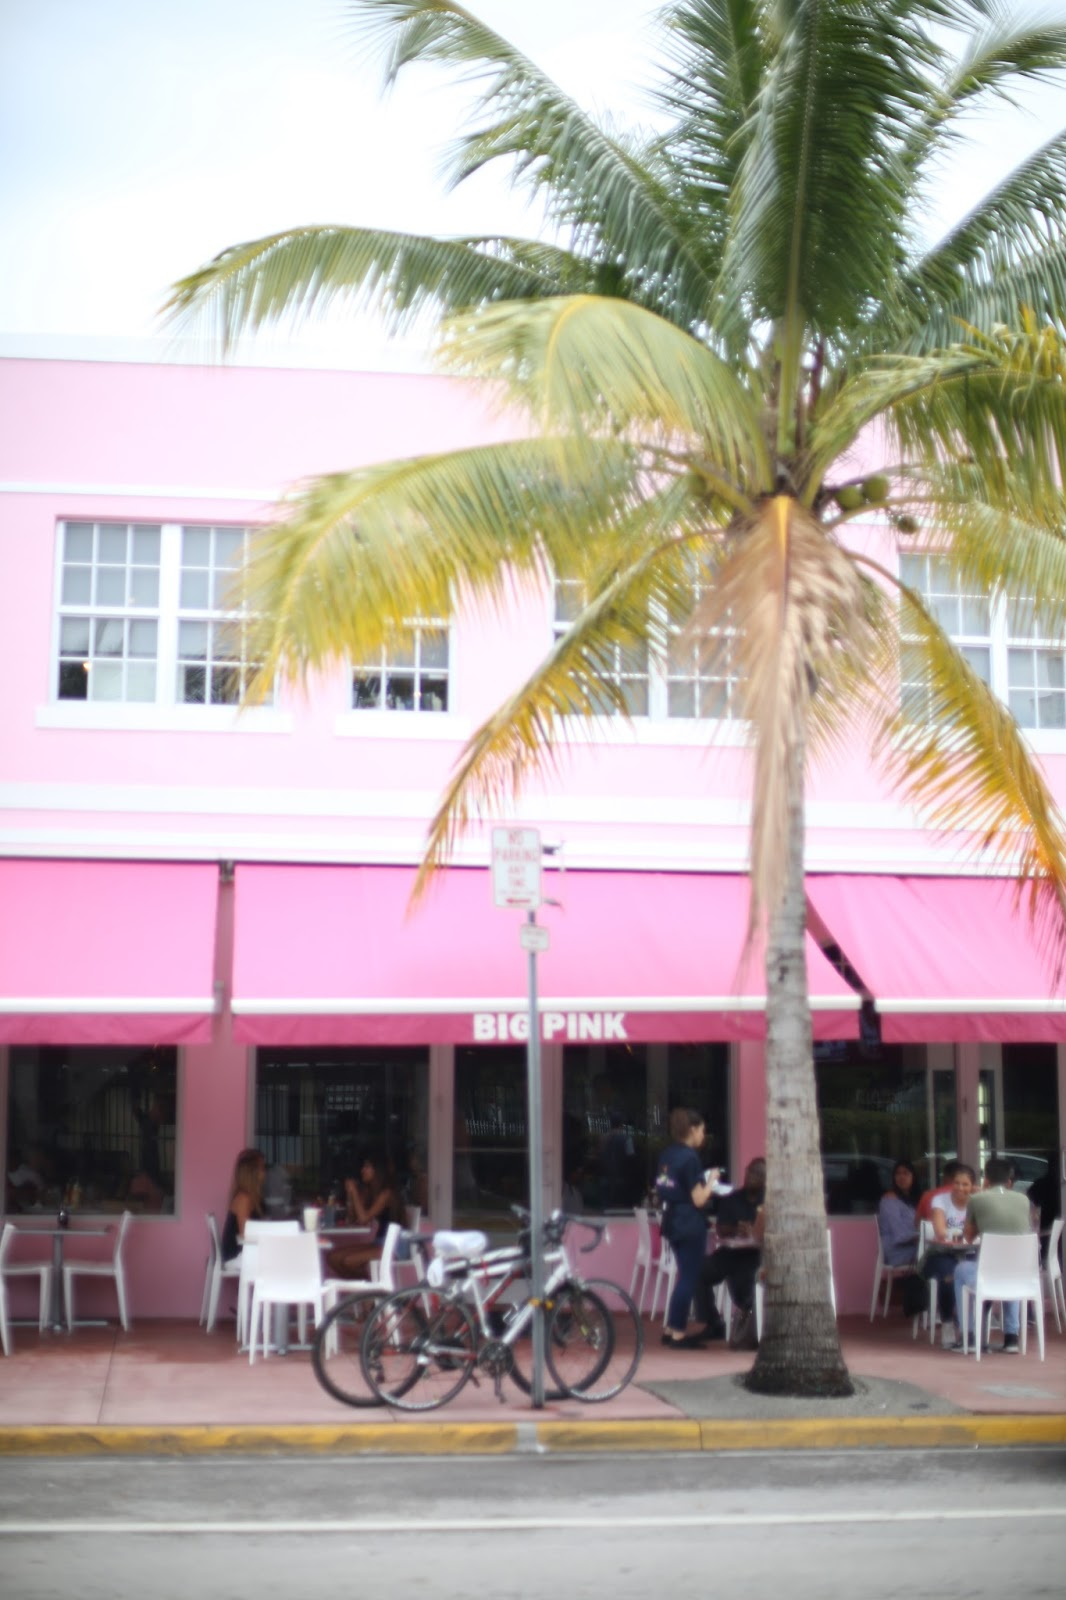 the big pink miami